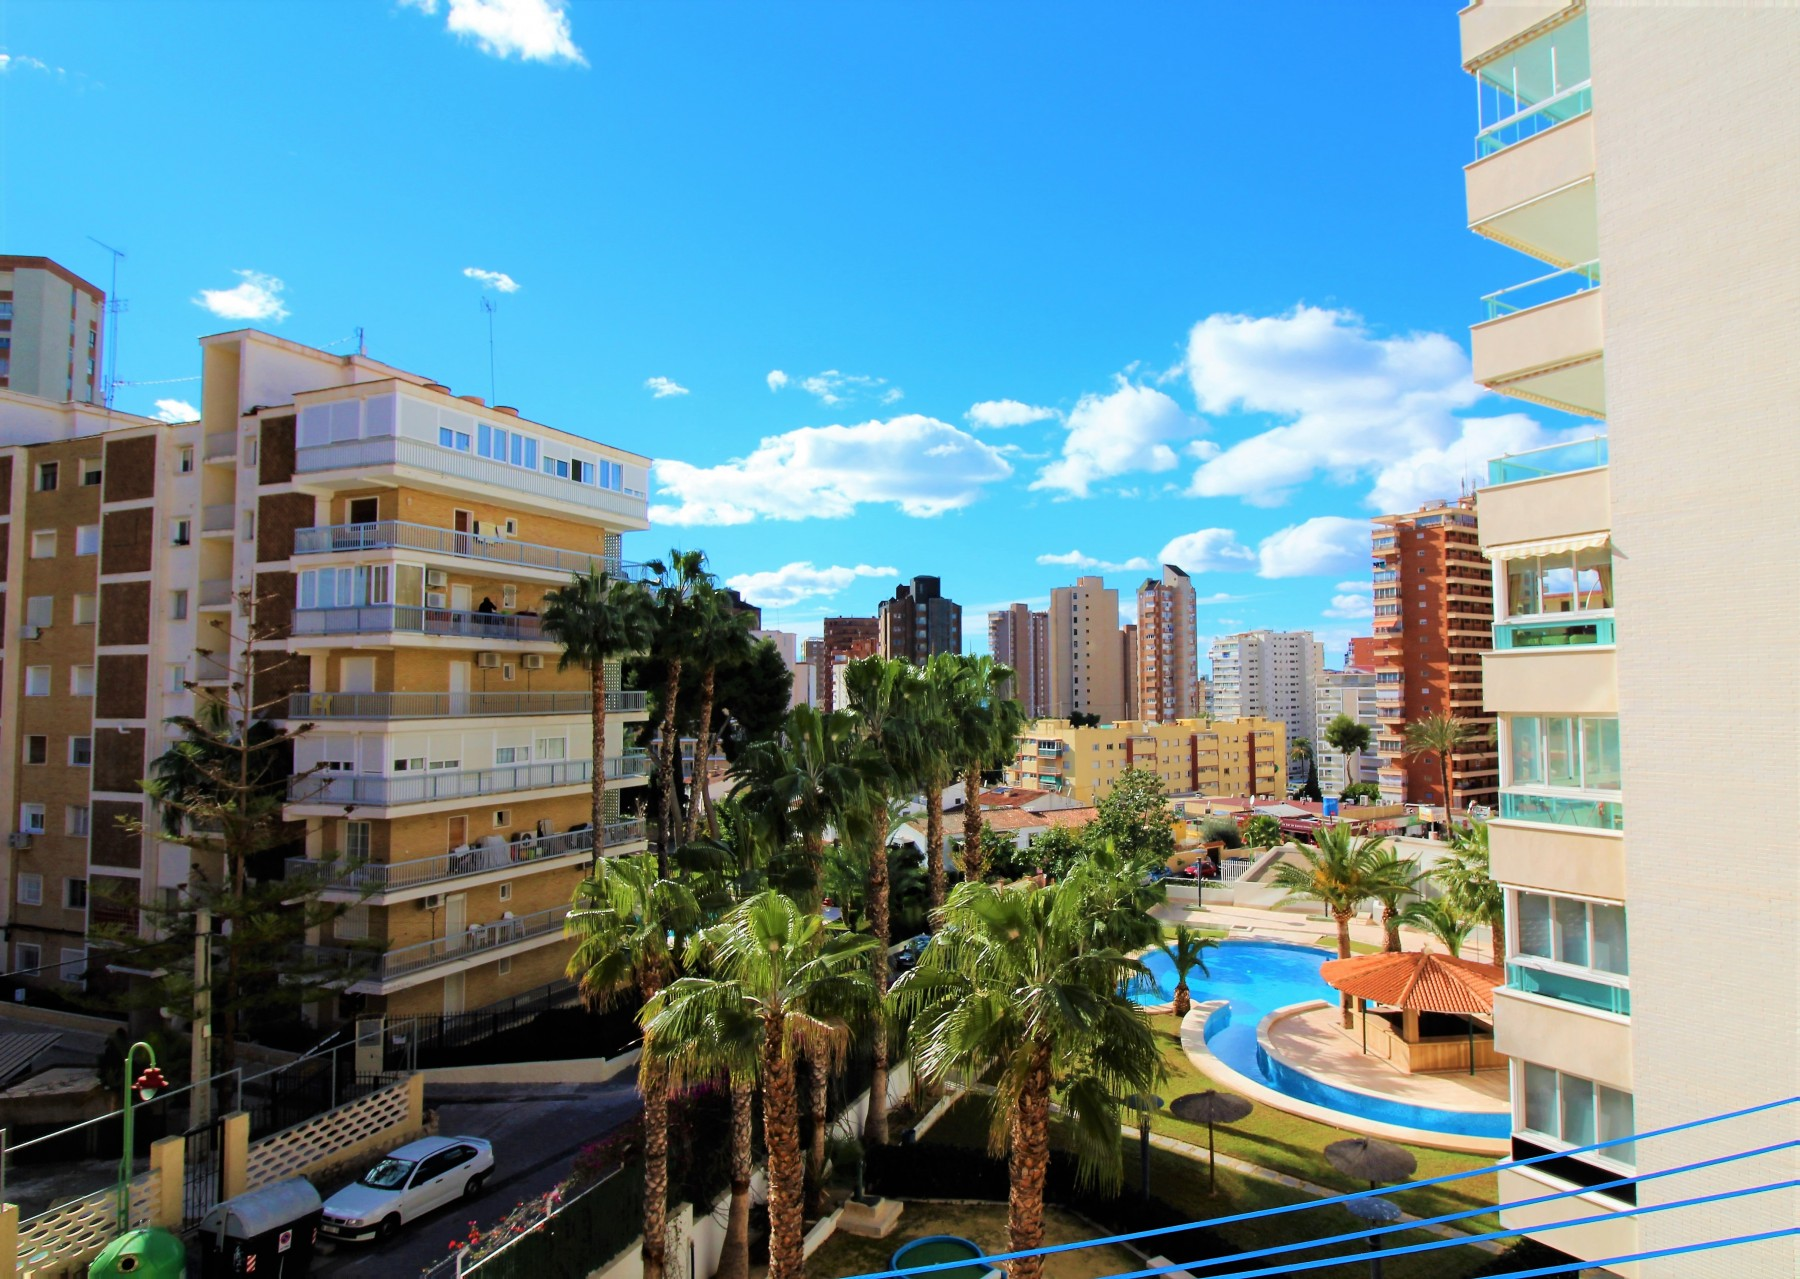 Tower Benidorm 42 - Apartments in Benidorm